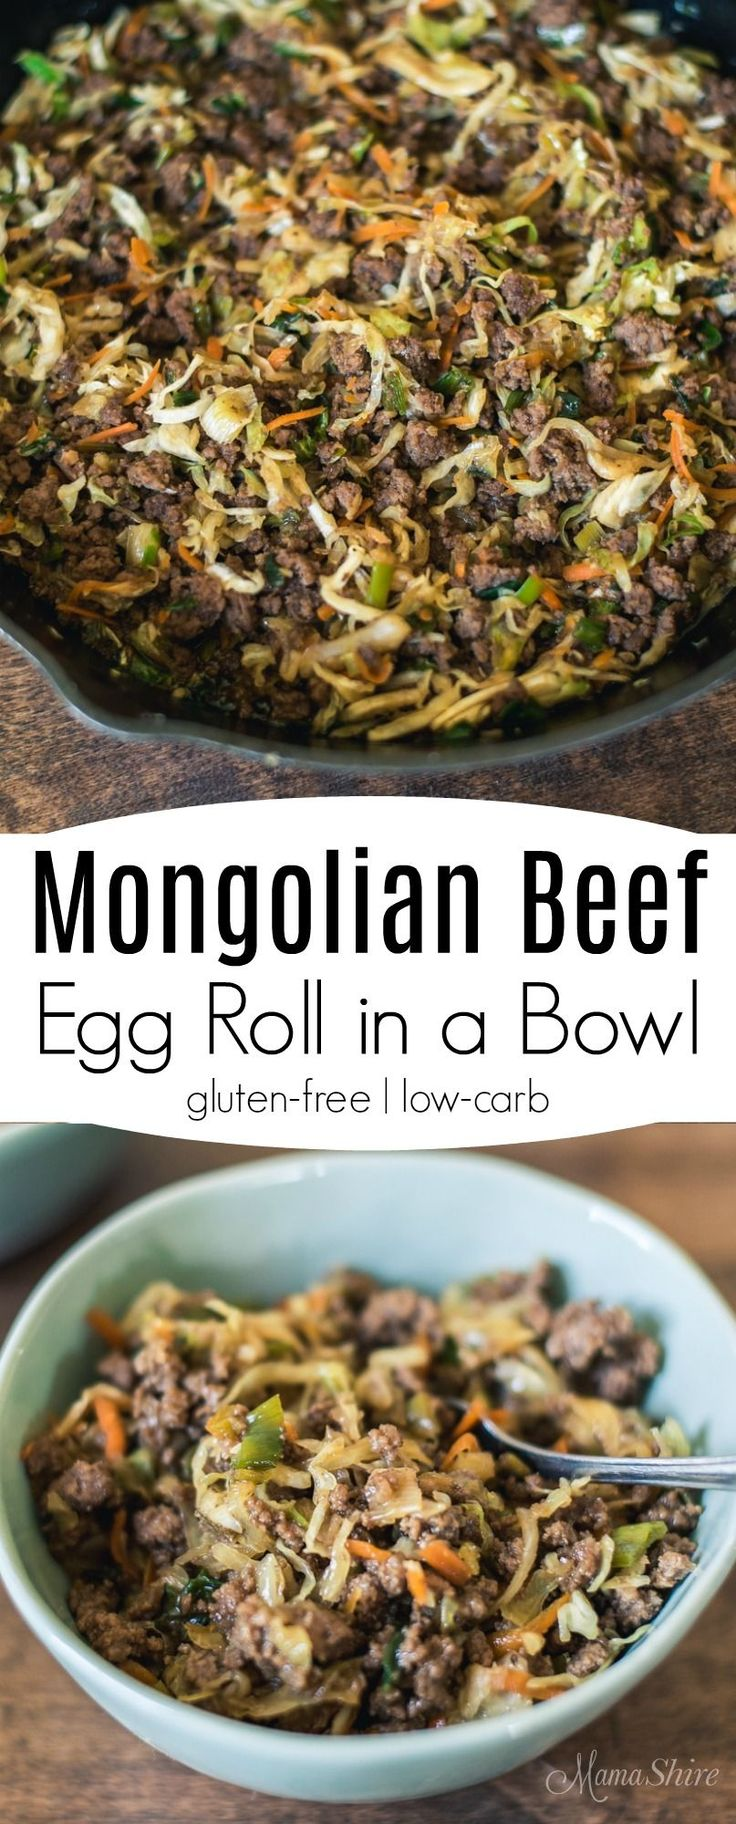 Mongolian Beef Egg Roll in a Bowl. A sweet and delicious take on a P. F. Chang's favorite. Gluten-free, Low-carb, Sugar-free, THM-FP #trimhealthymama #thm #lowcarb #glutenfree